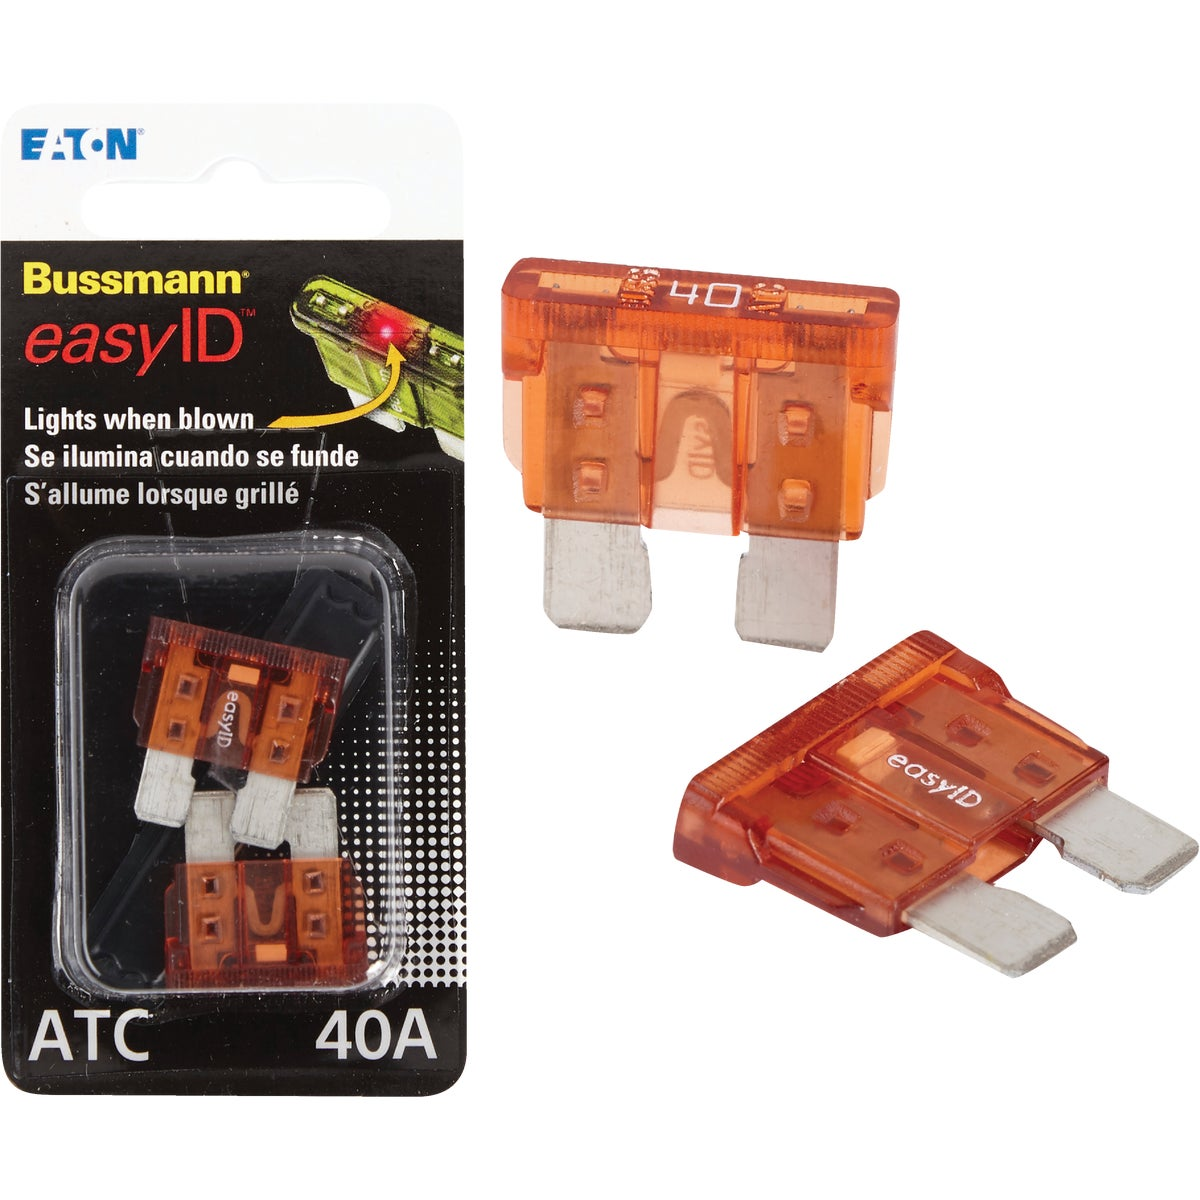 2PK 40A ATC EASY ID FUSE - BP/ATC-40ID by Bussmann Cooper